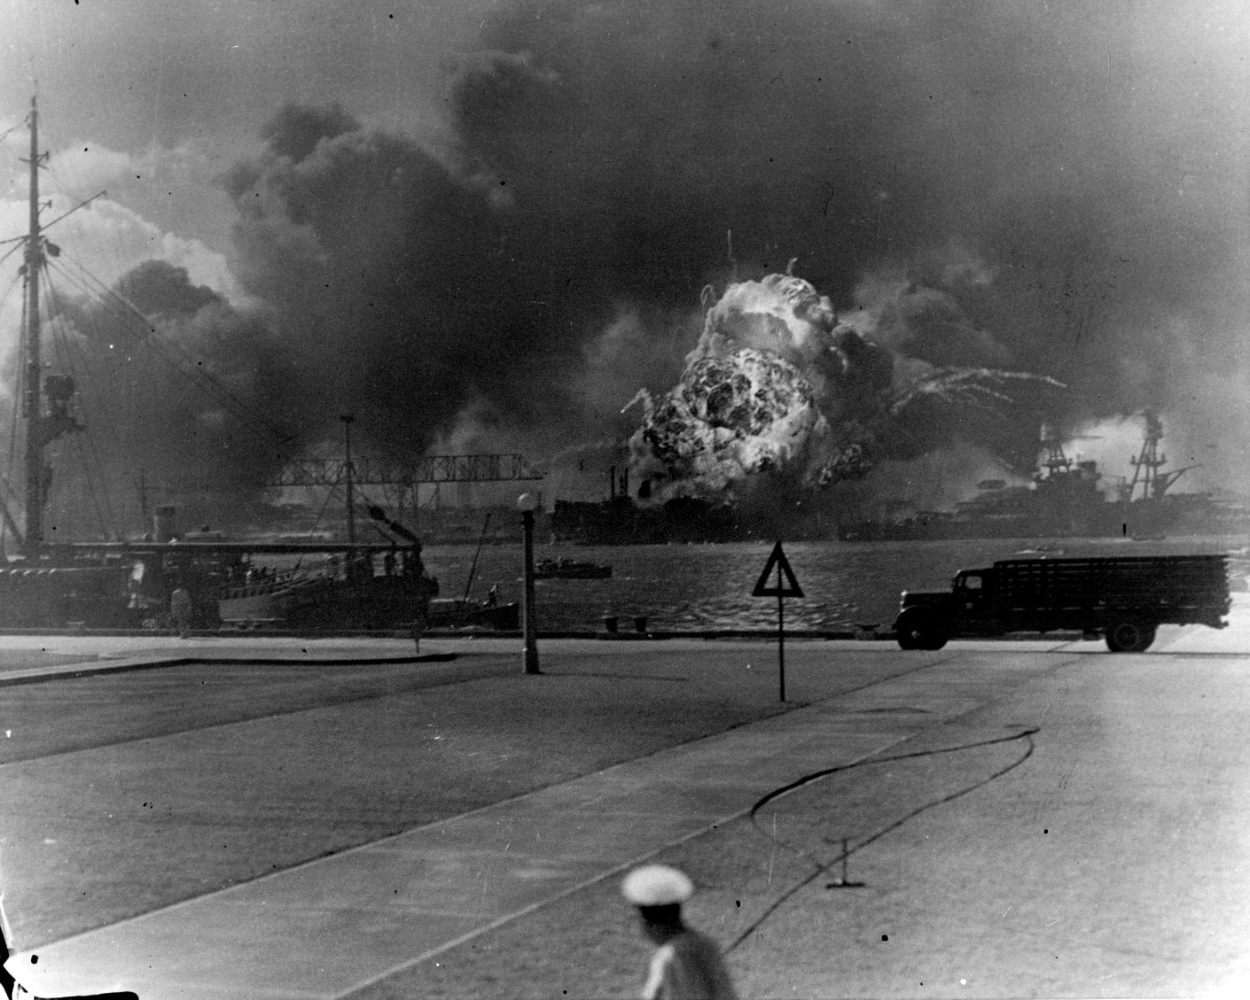 pearl harbor bombed by japanese planes This page features views of japanese carrier planes in action during the pearl harbor attack, and crashed japanese planes after the raid.